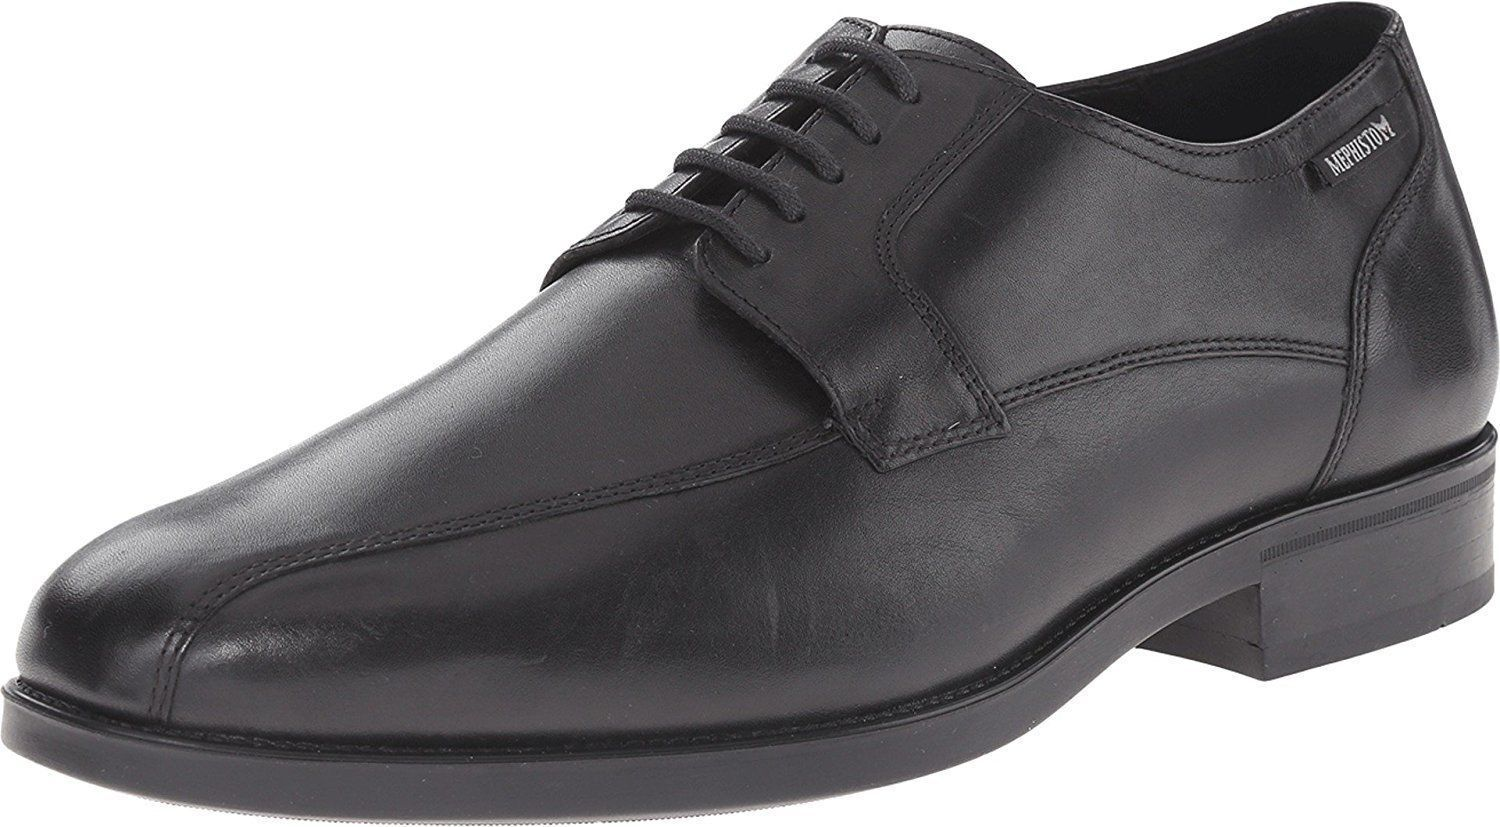 Mephisto Men's Connor Black Leather Comfortable Oxford Shoe